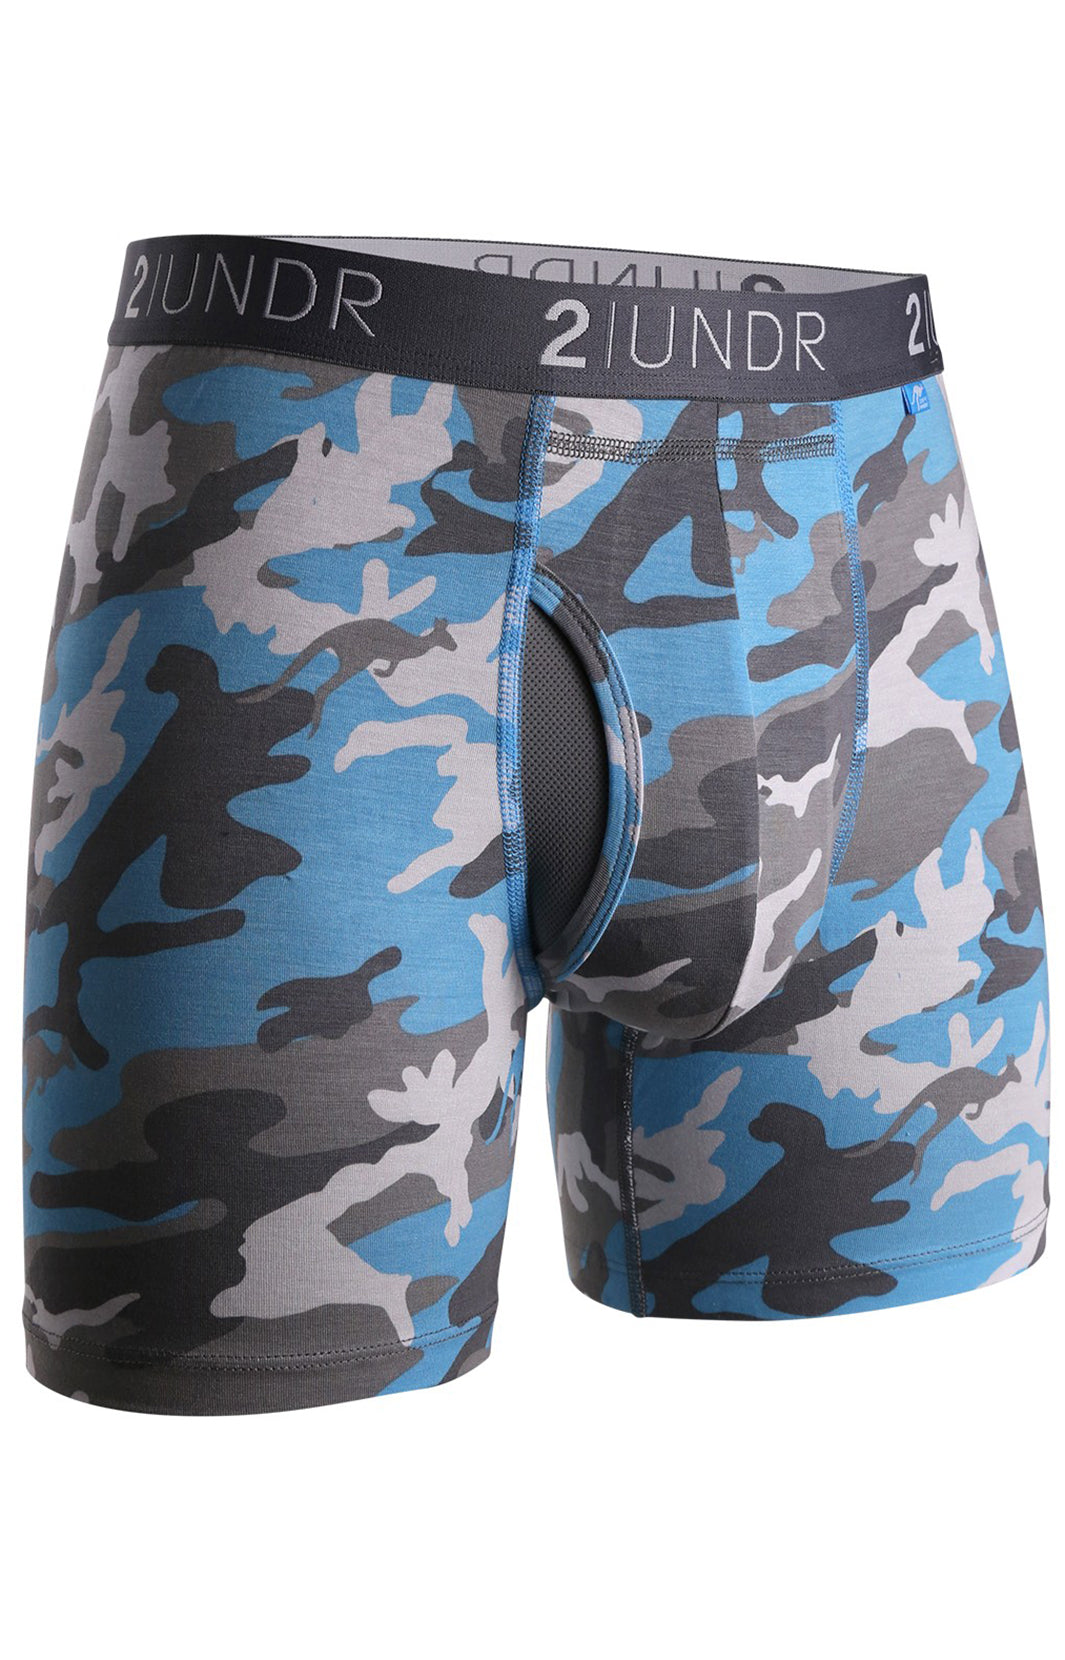 "SWING SHIFT 6"" BOXER BRIEF - ICE CAMO"